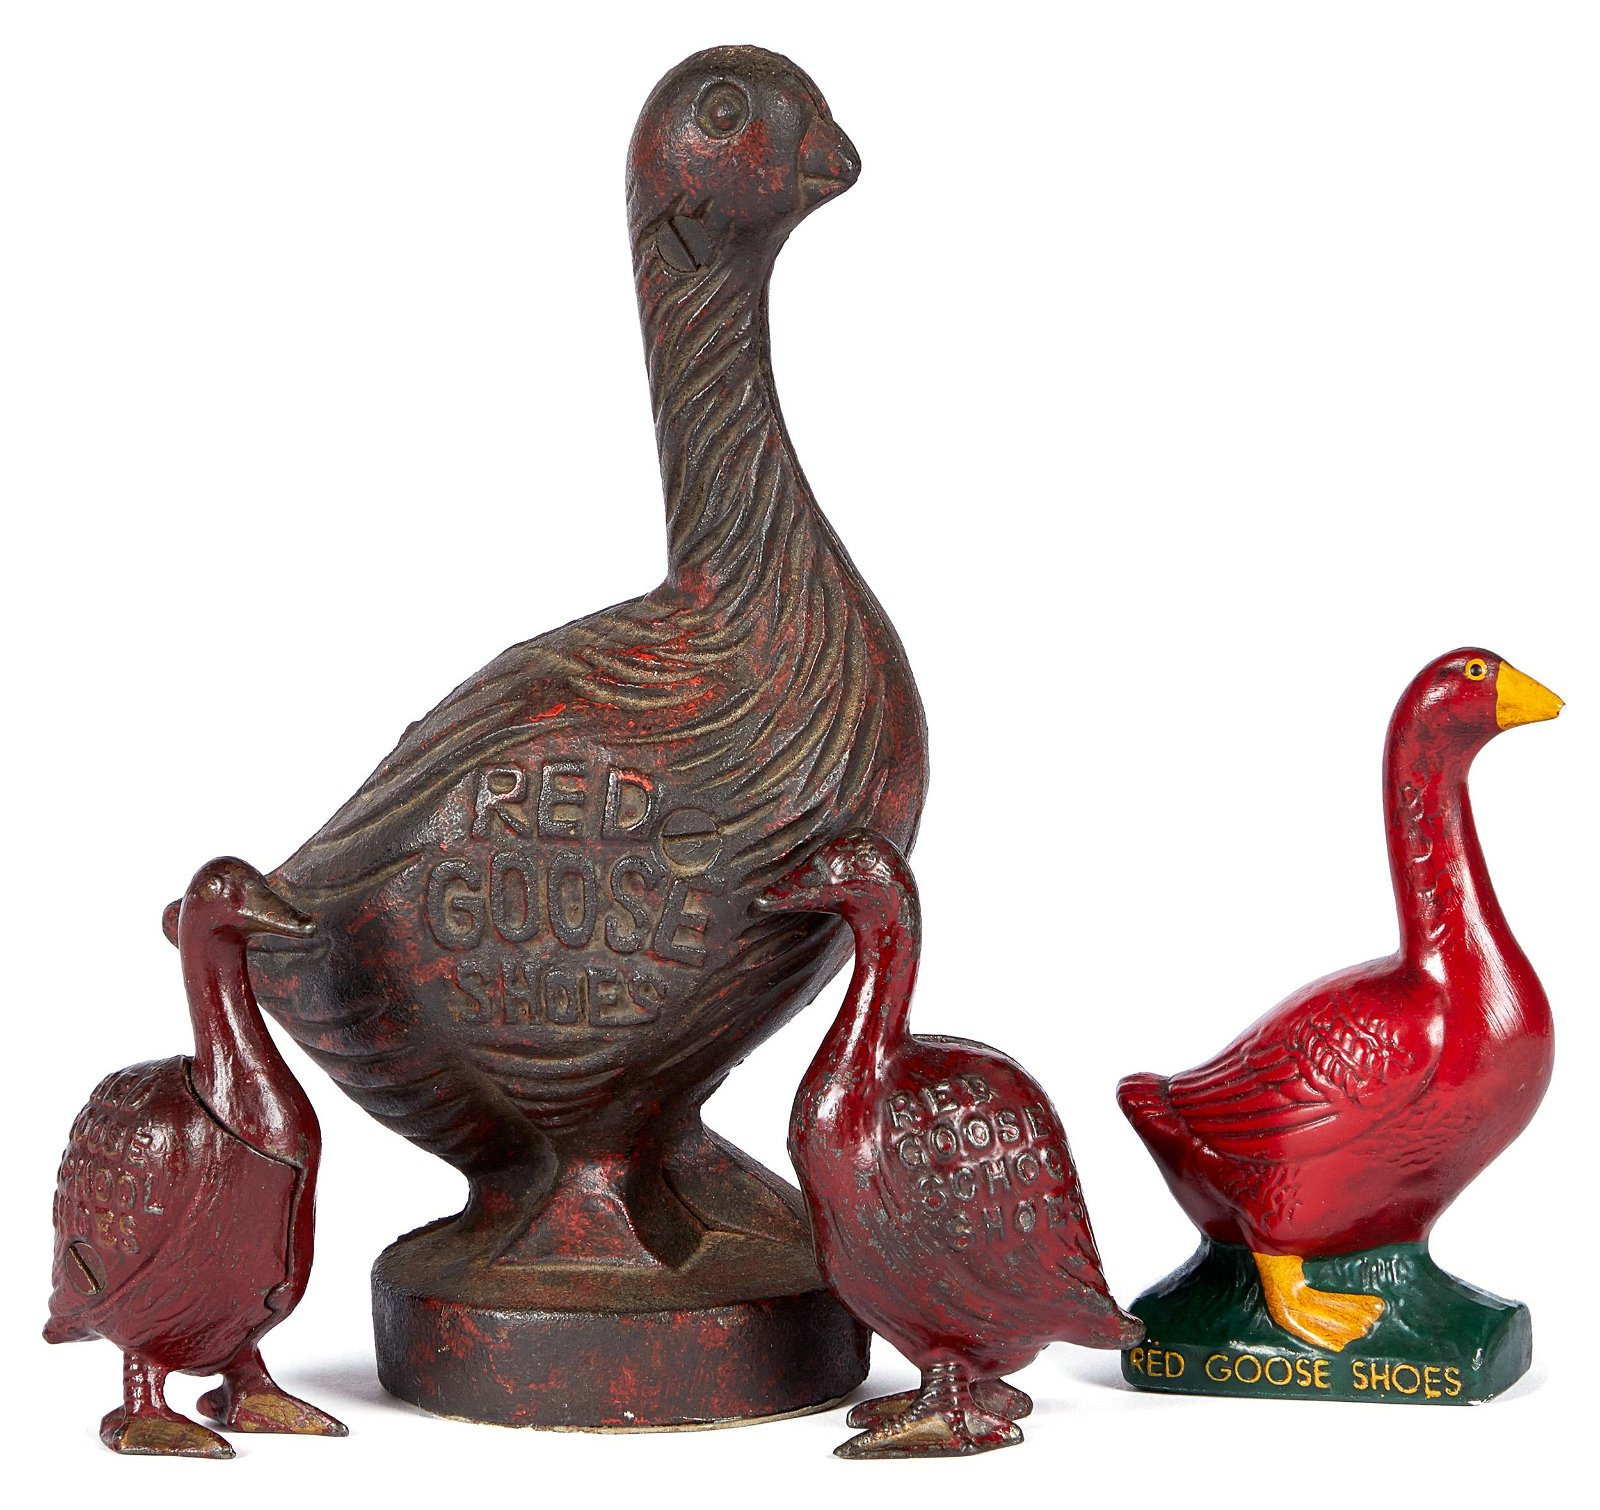 Three cast iron Red Goose Shoes still banks